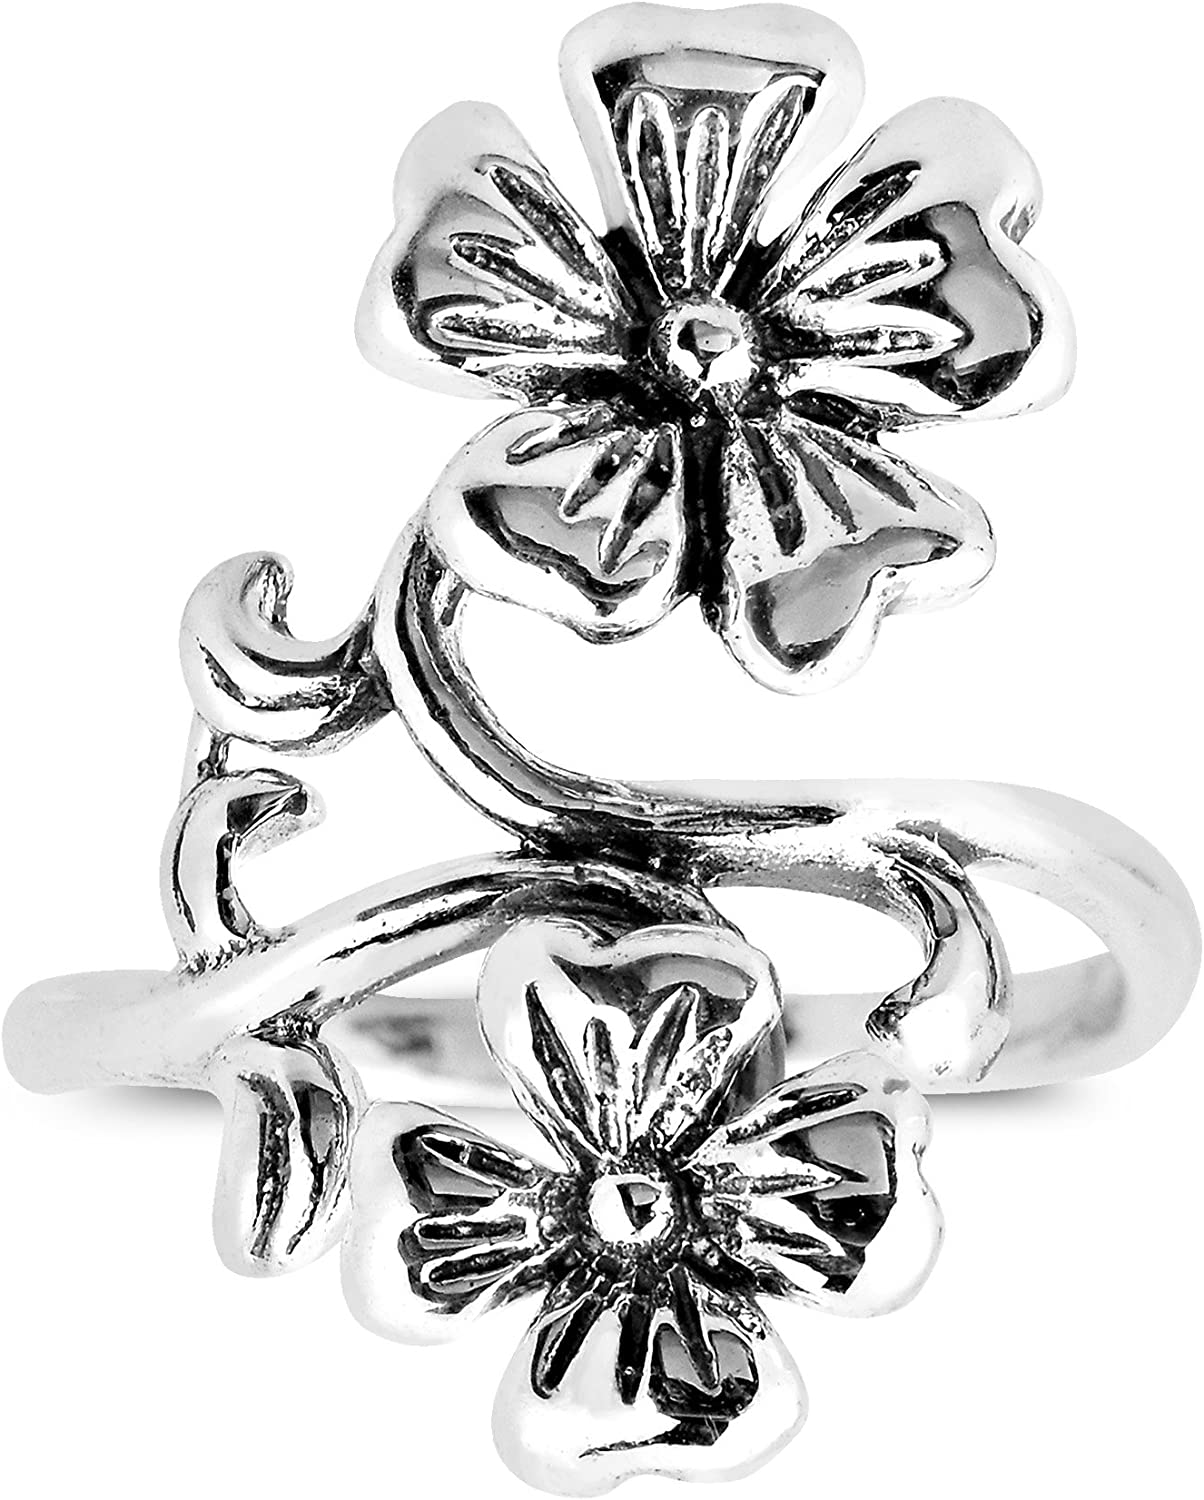 AeraVida Nature Inspired Pretty Flower Themed .925 Sterling Silver Toe Ring or Pinky Ring